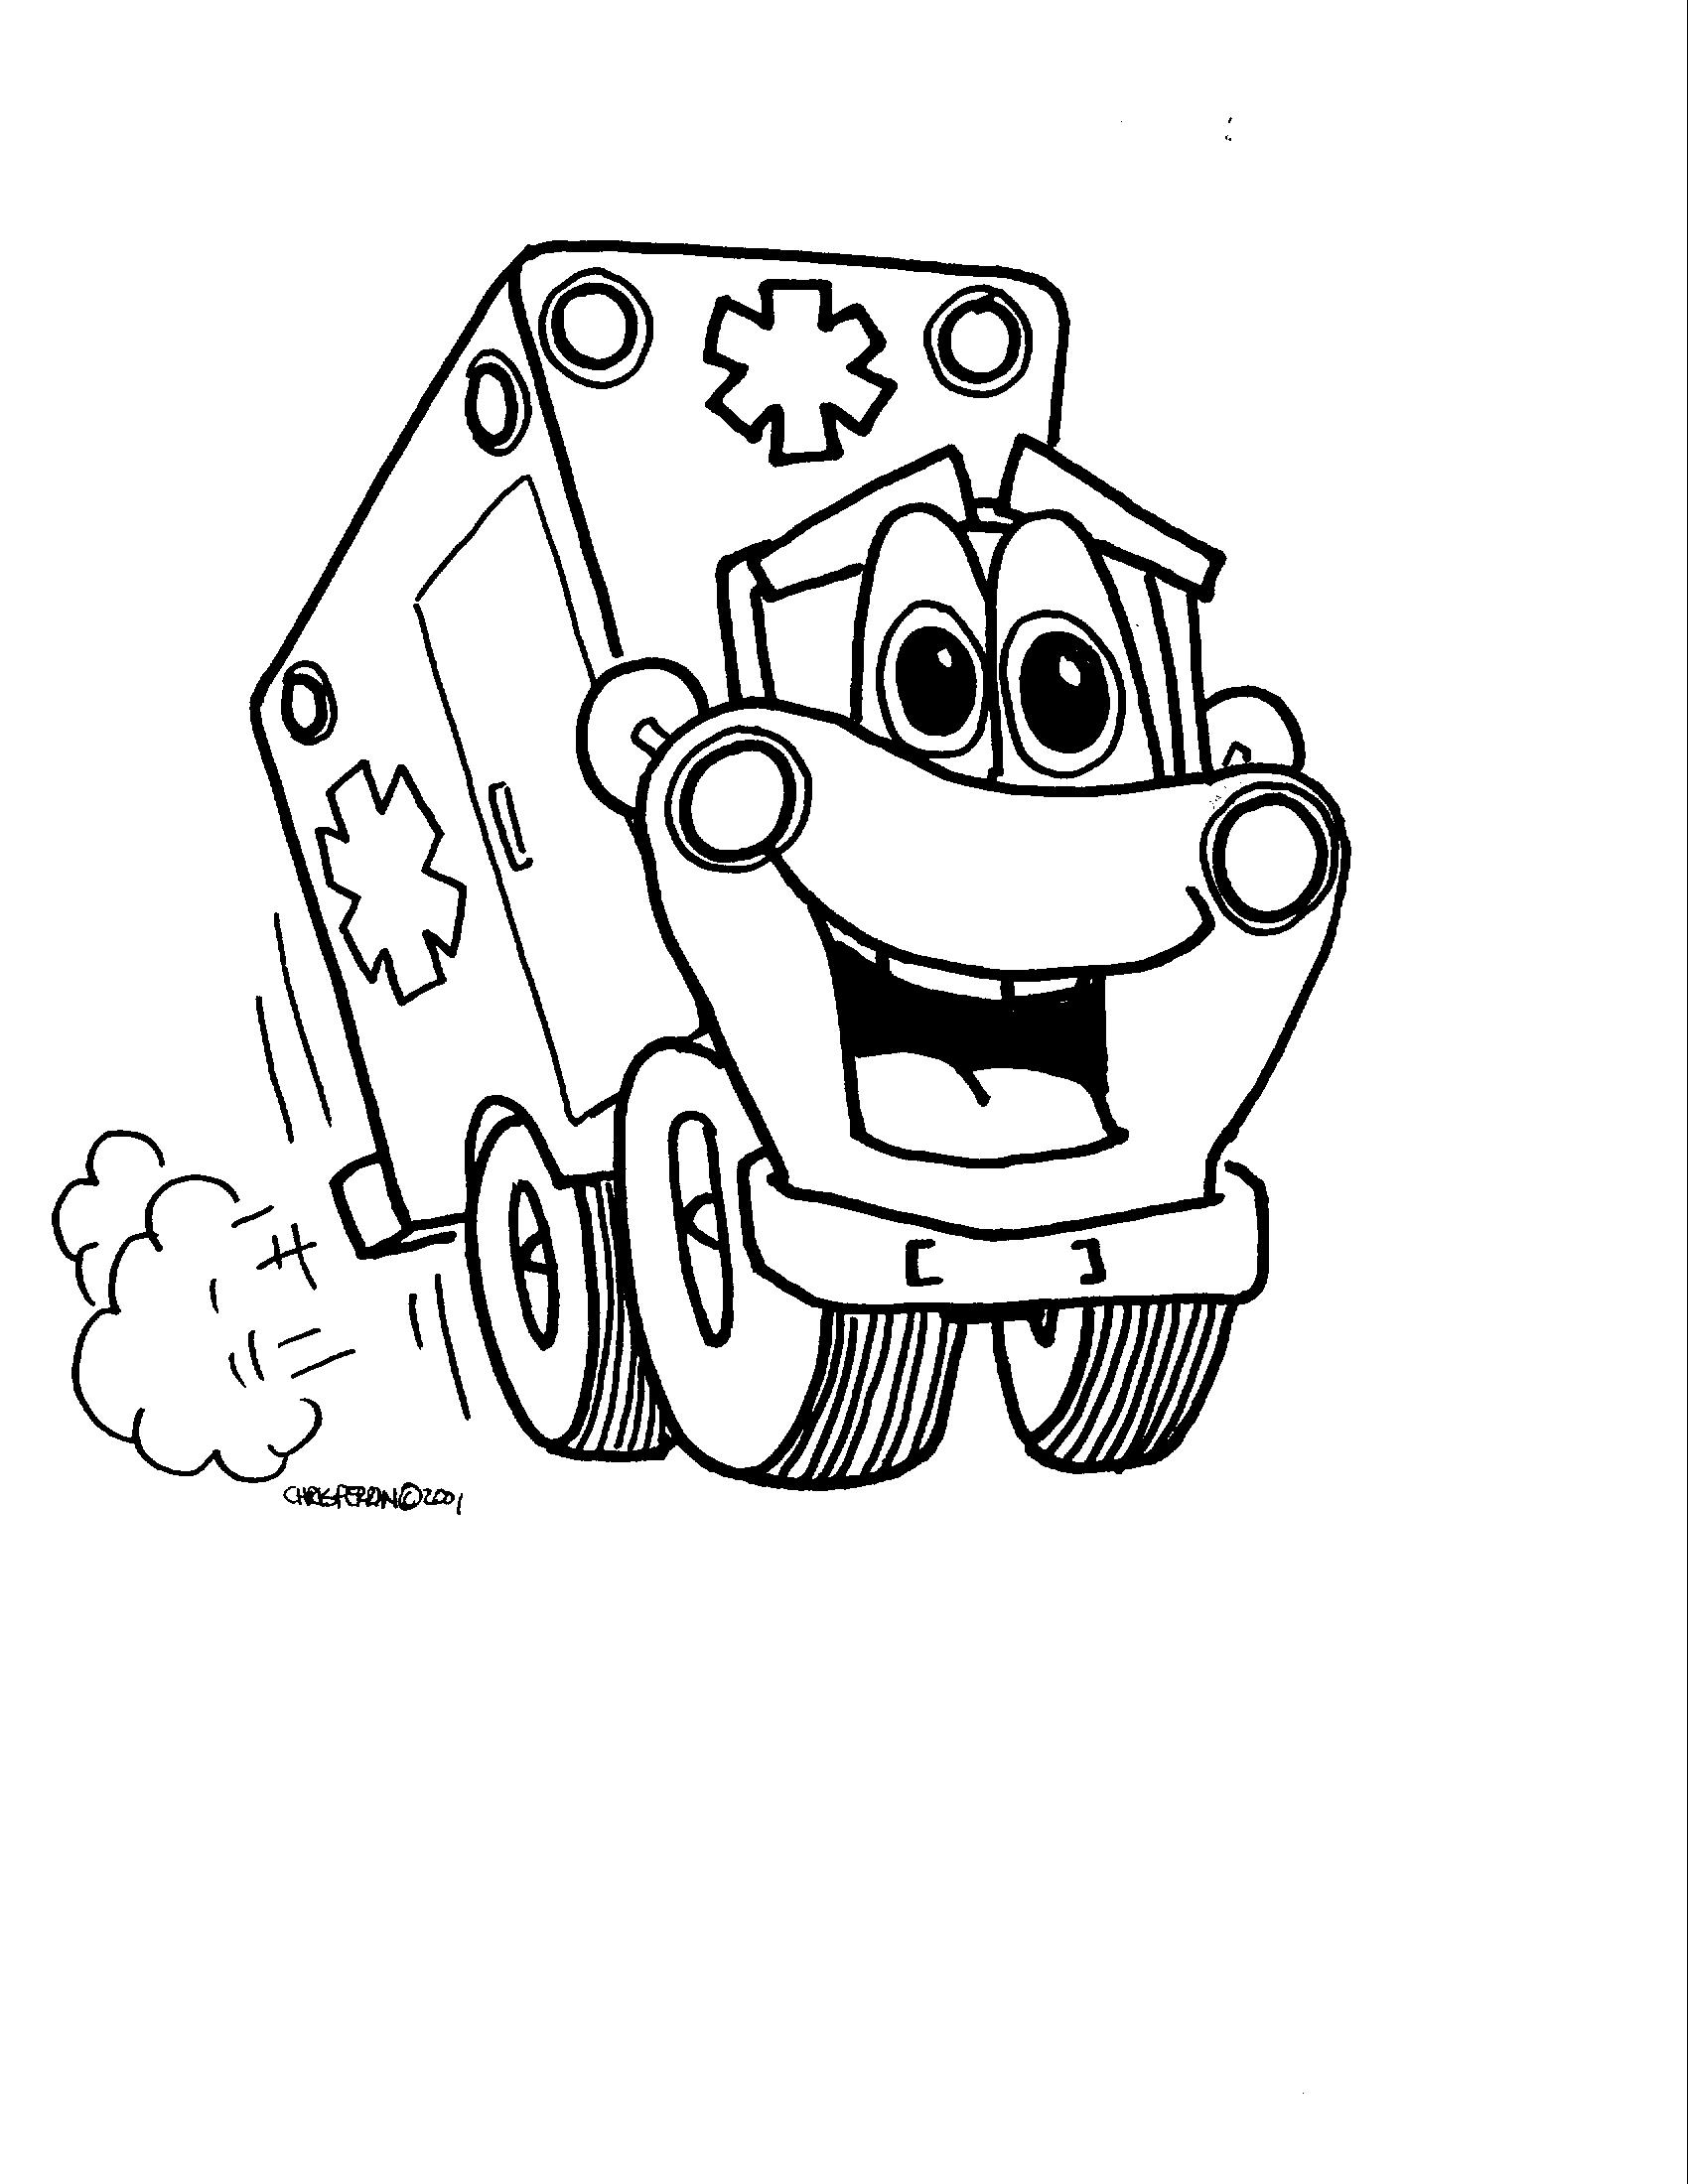 ems coloring pages - photo#16